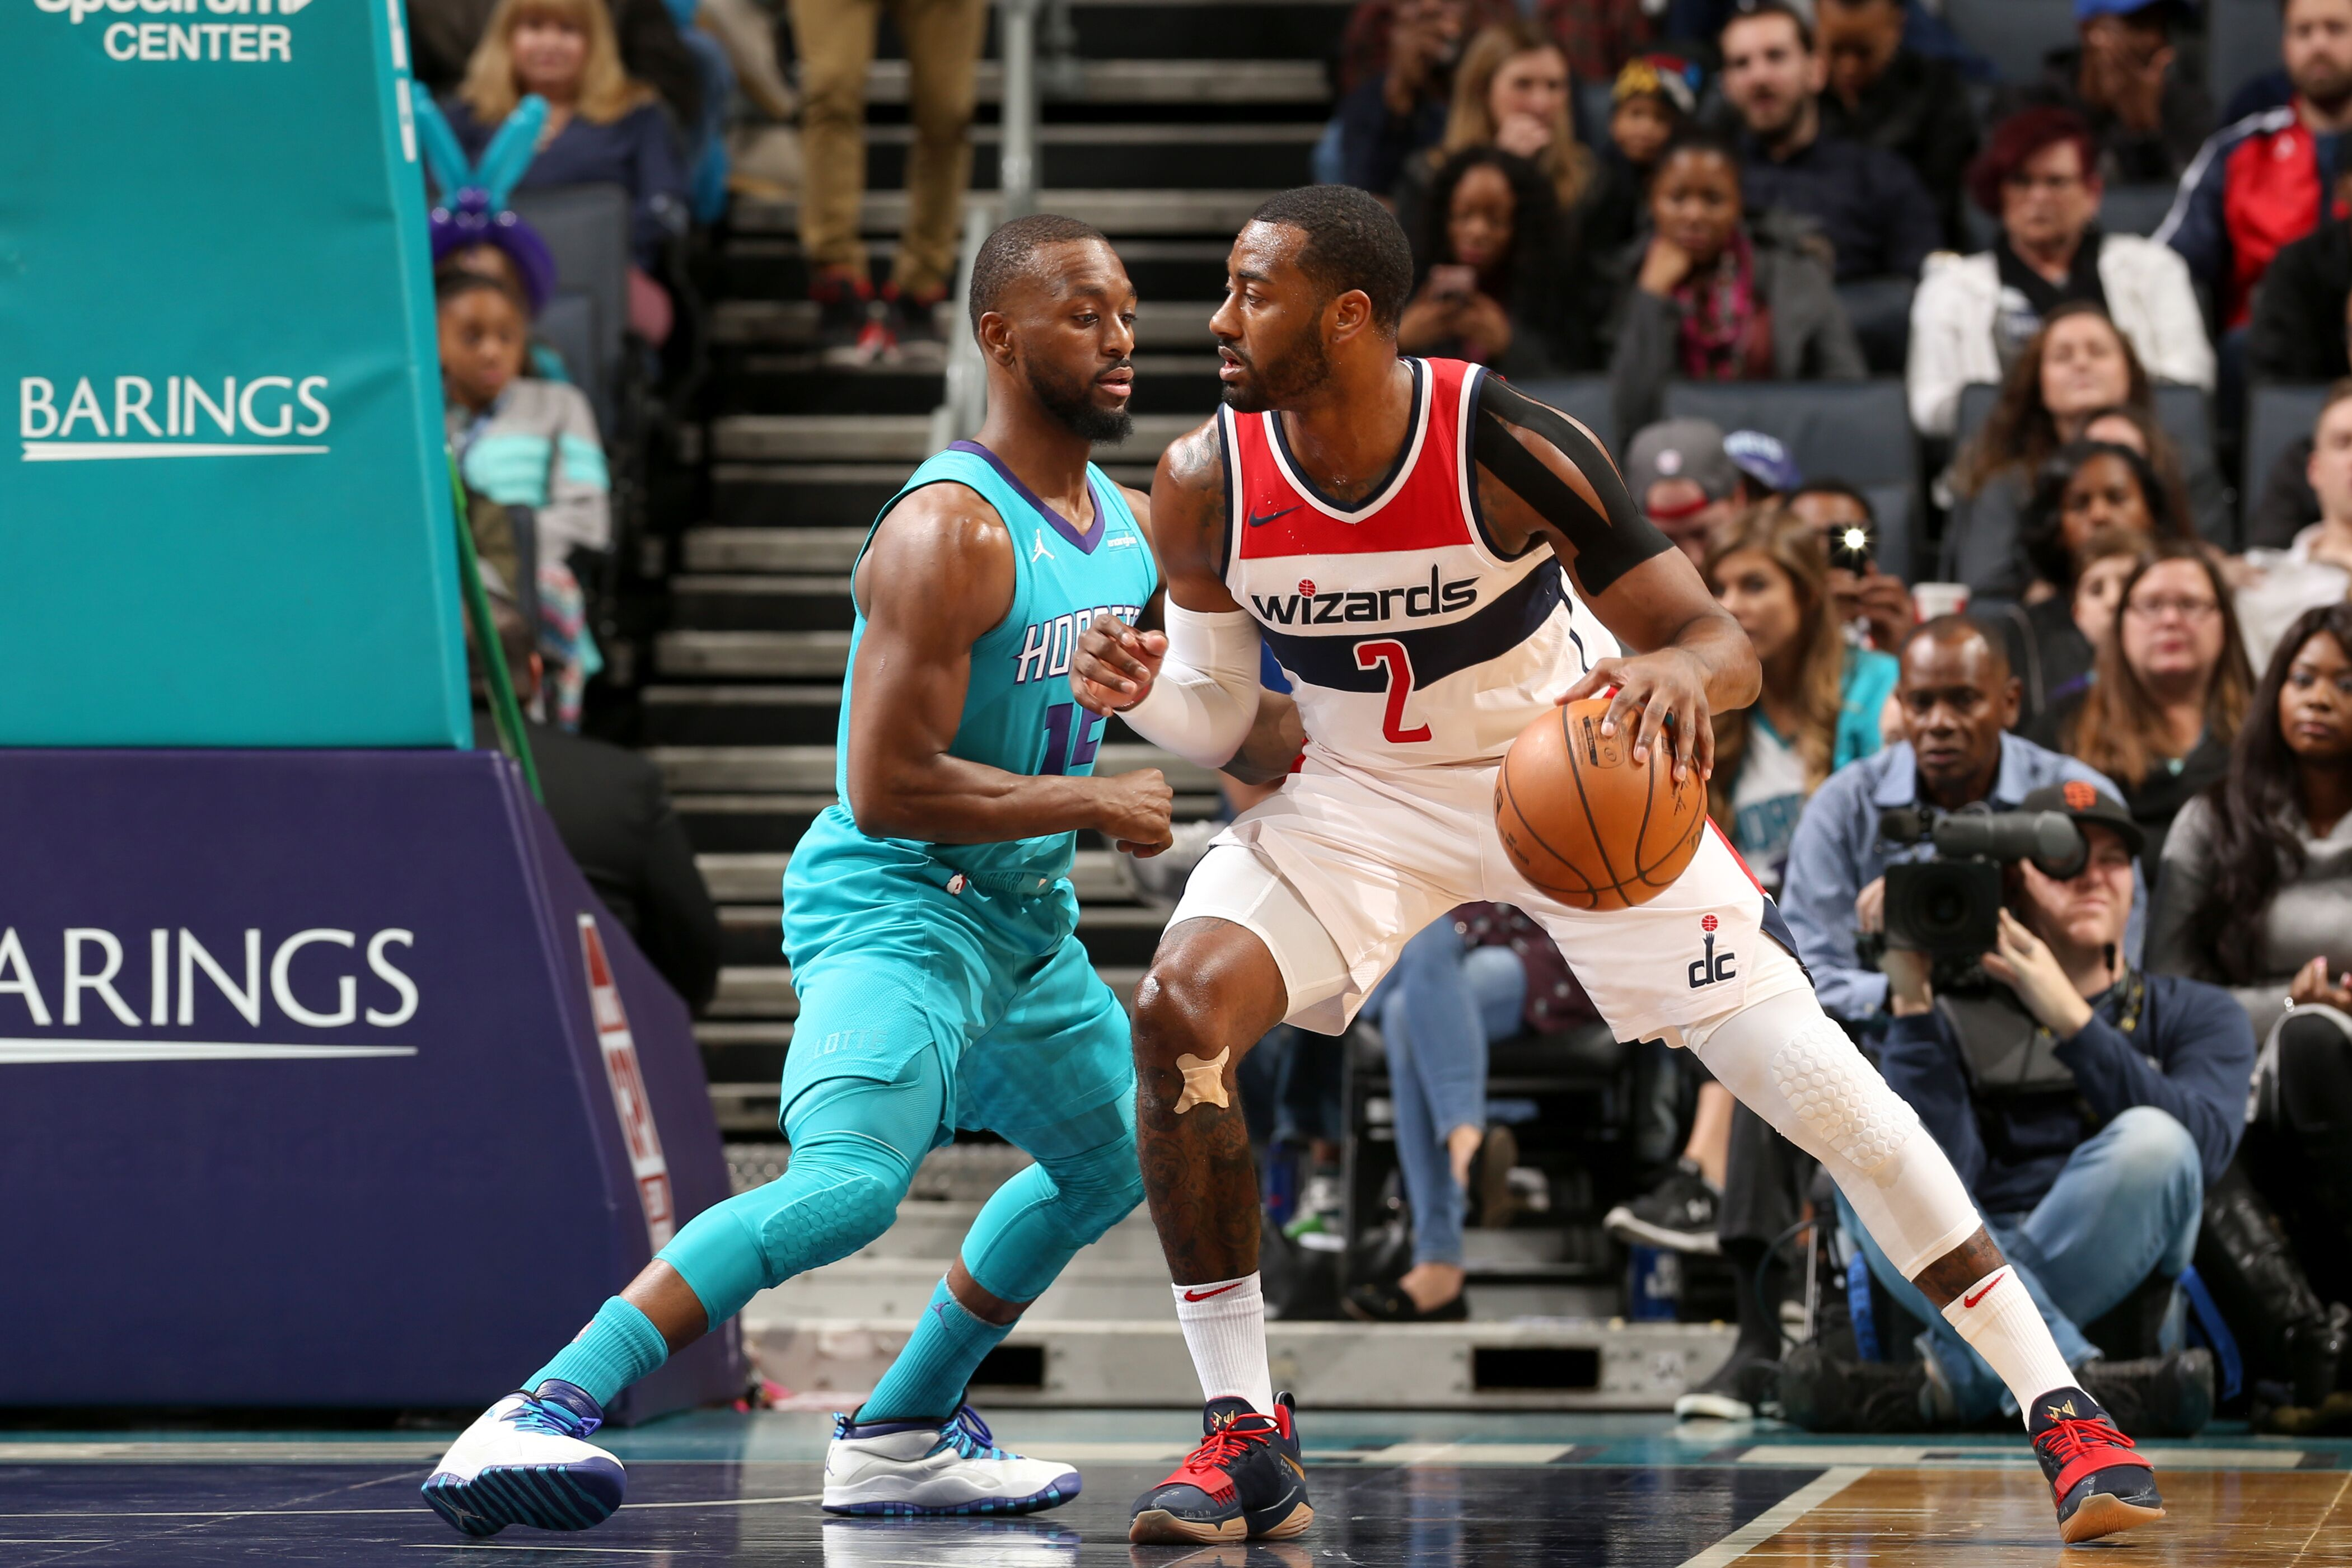 877631156-washington-wizards-v-charlotte-hornets.jpg